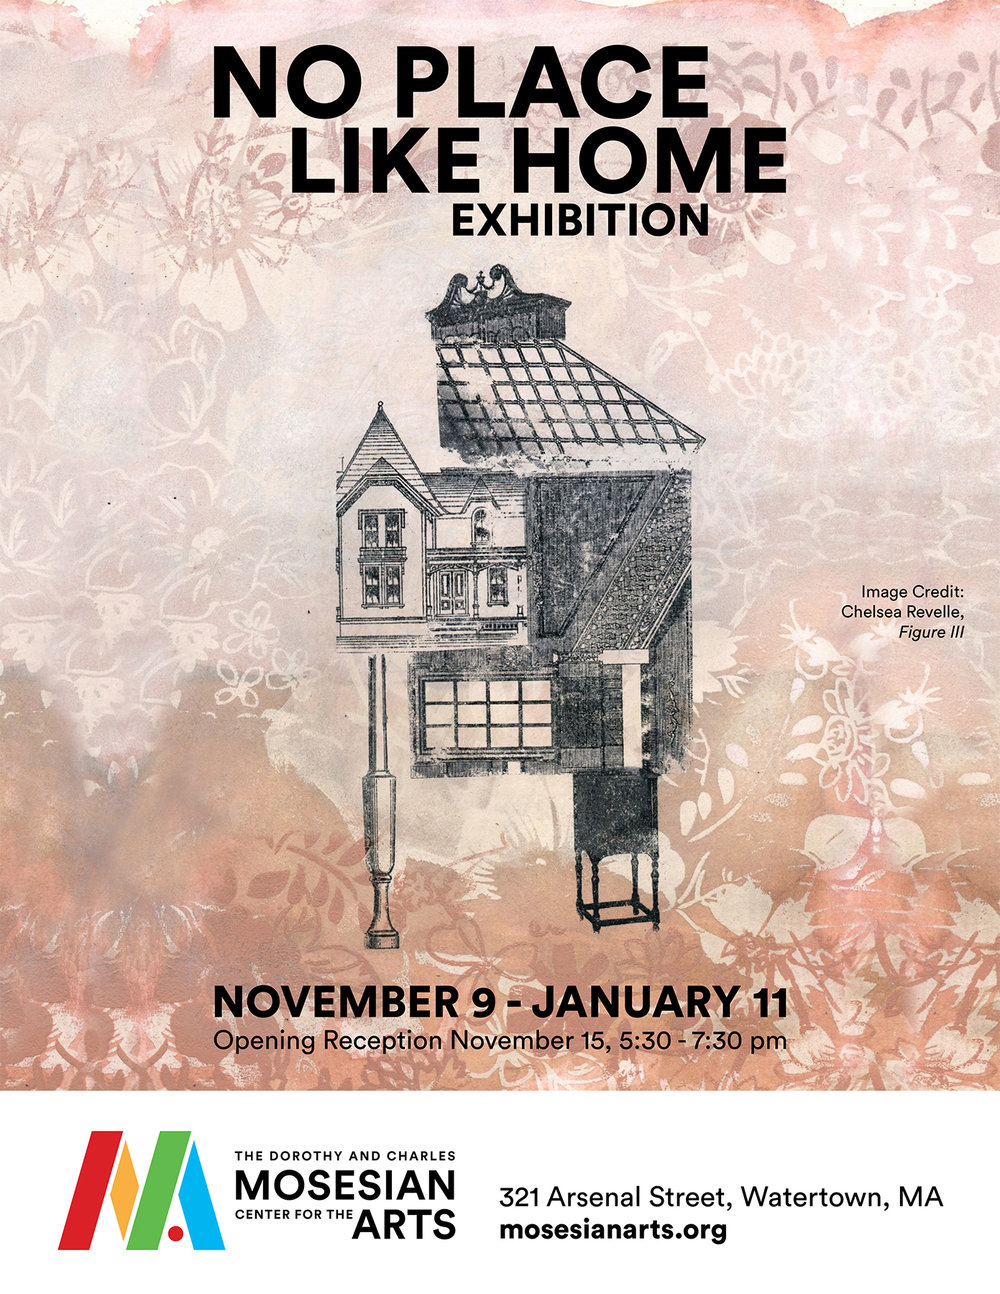 """Chelsea Revelle's work shown on the poster for """"No Place Like Home"""""""